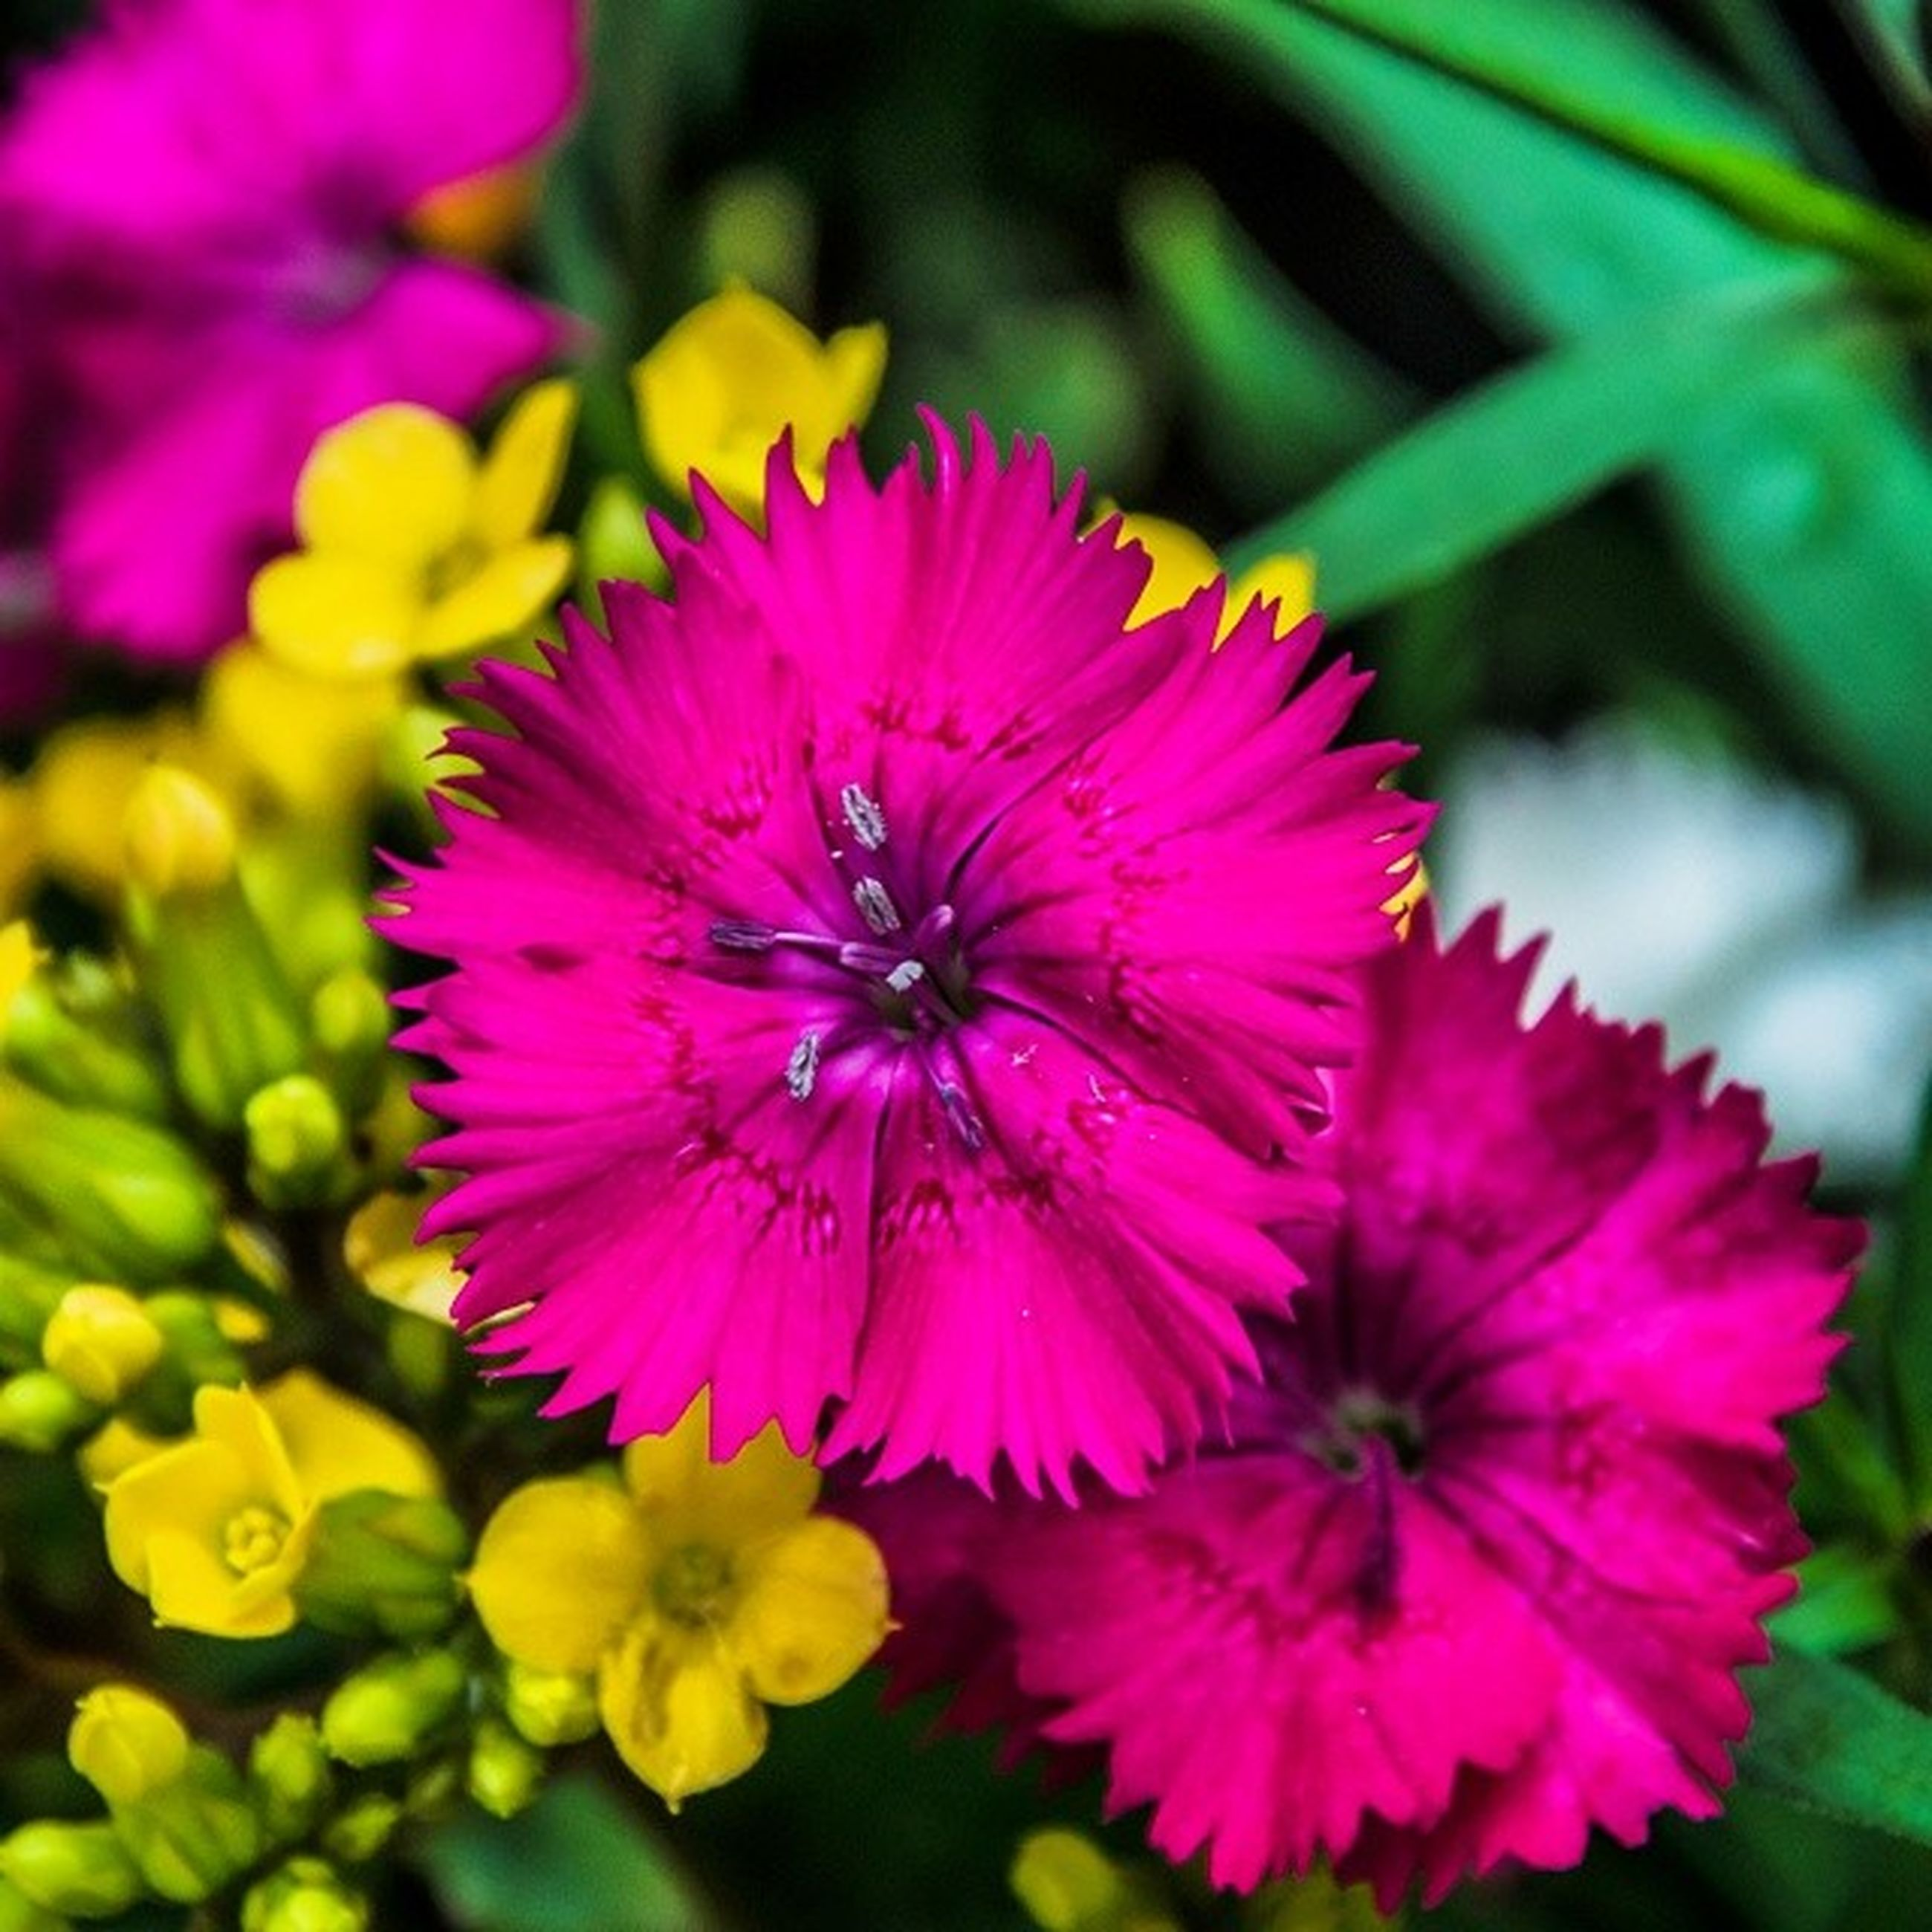 flower, freshness, petal, fragility, flower head, growth, beauty in nature, pink color, close-up, blooming, nature, focus on foreground, pollen, plant, in bloom, park - man made space, purple, pink, blossom, yellow